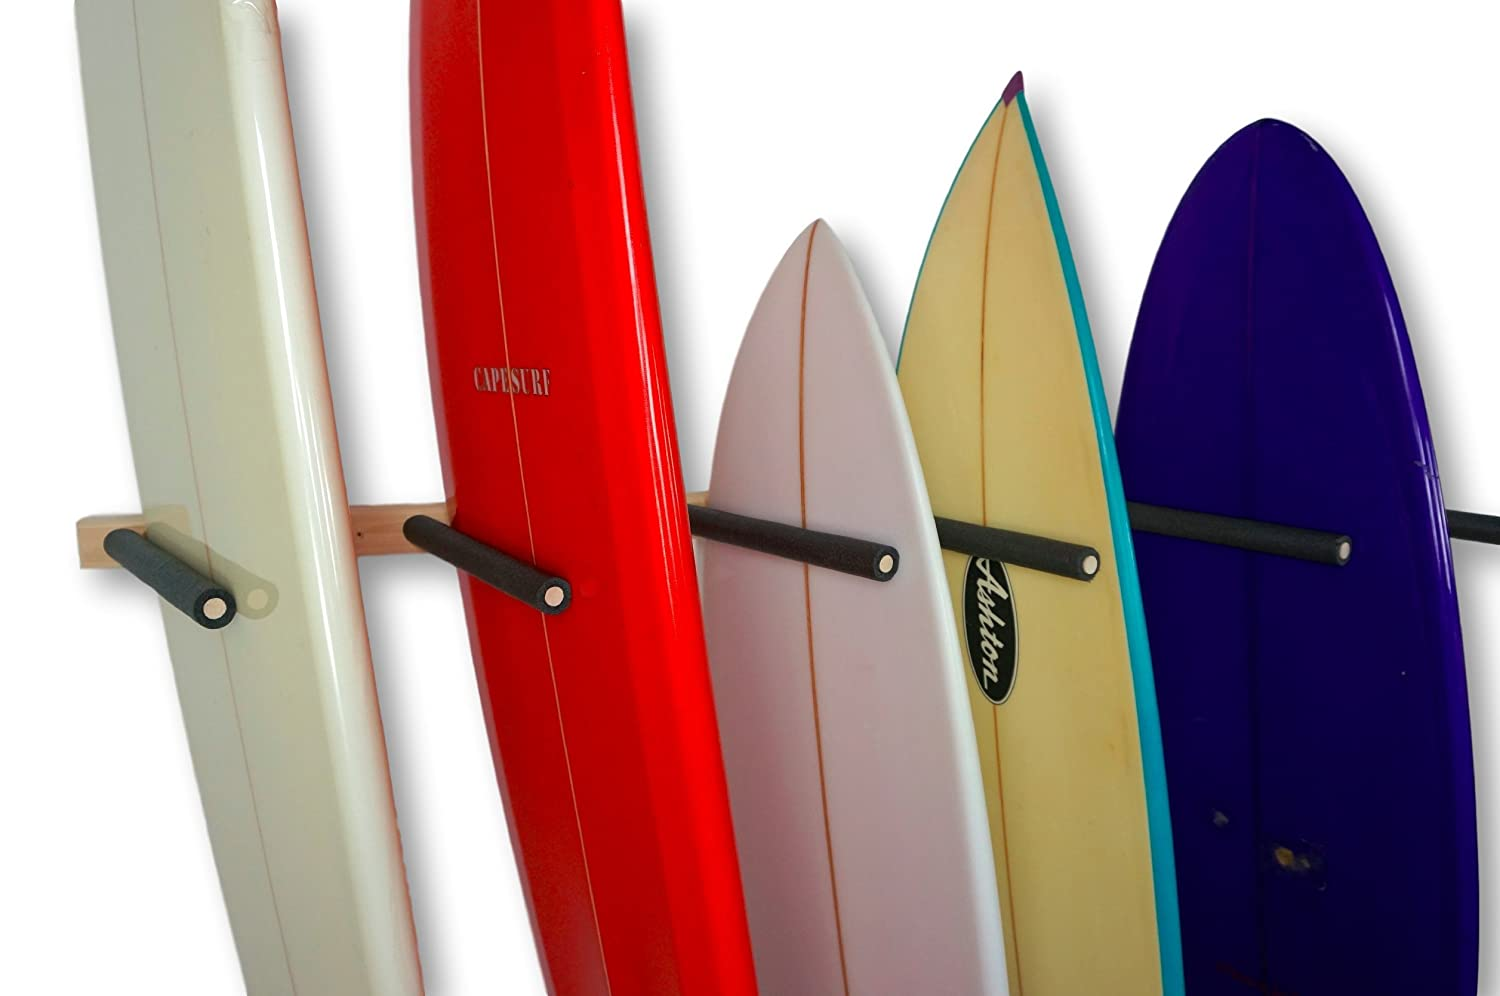 STORE YOUR BOARD StoreYourBoard - Estante de Pared Vertical ...